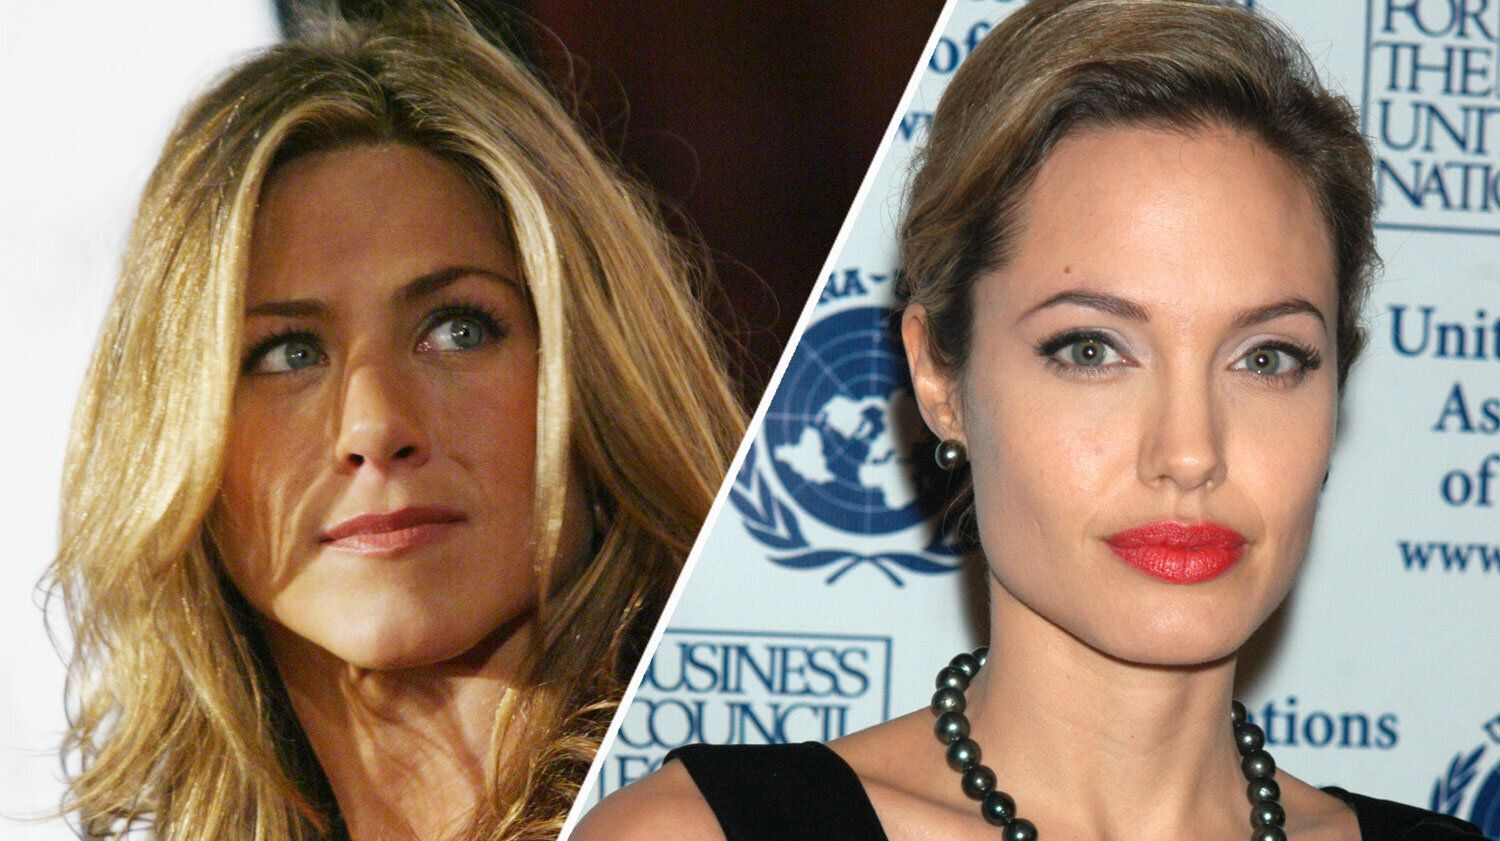 Jennifer Aniston and Angelina Jolie in 2005 (AP Photo/Danny Moloshok/John Smock)